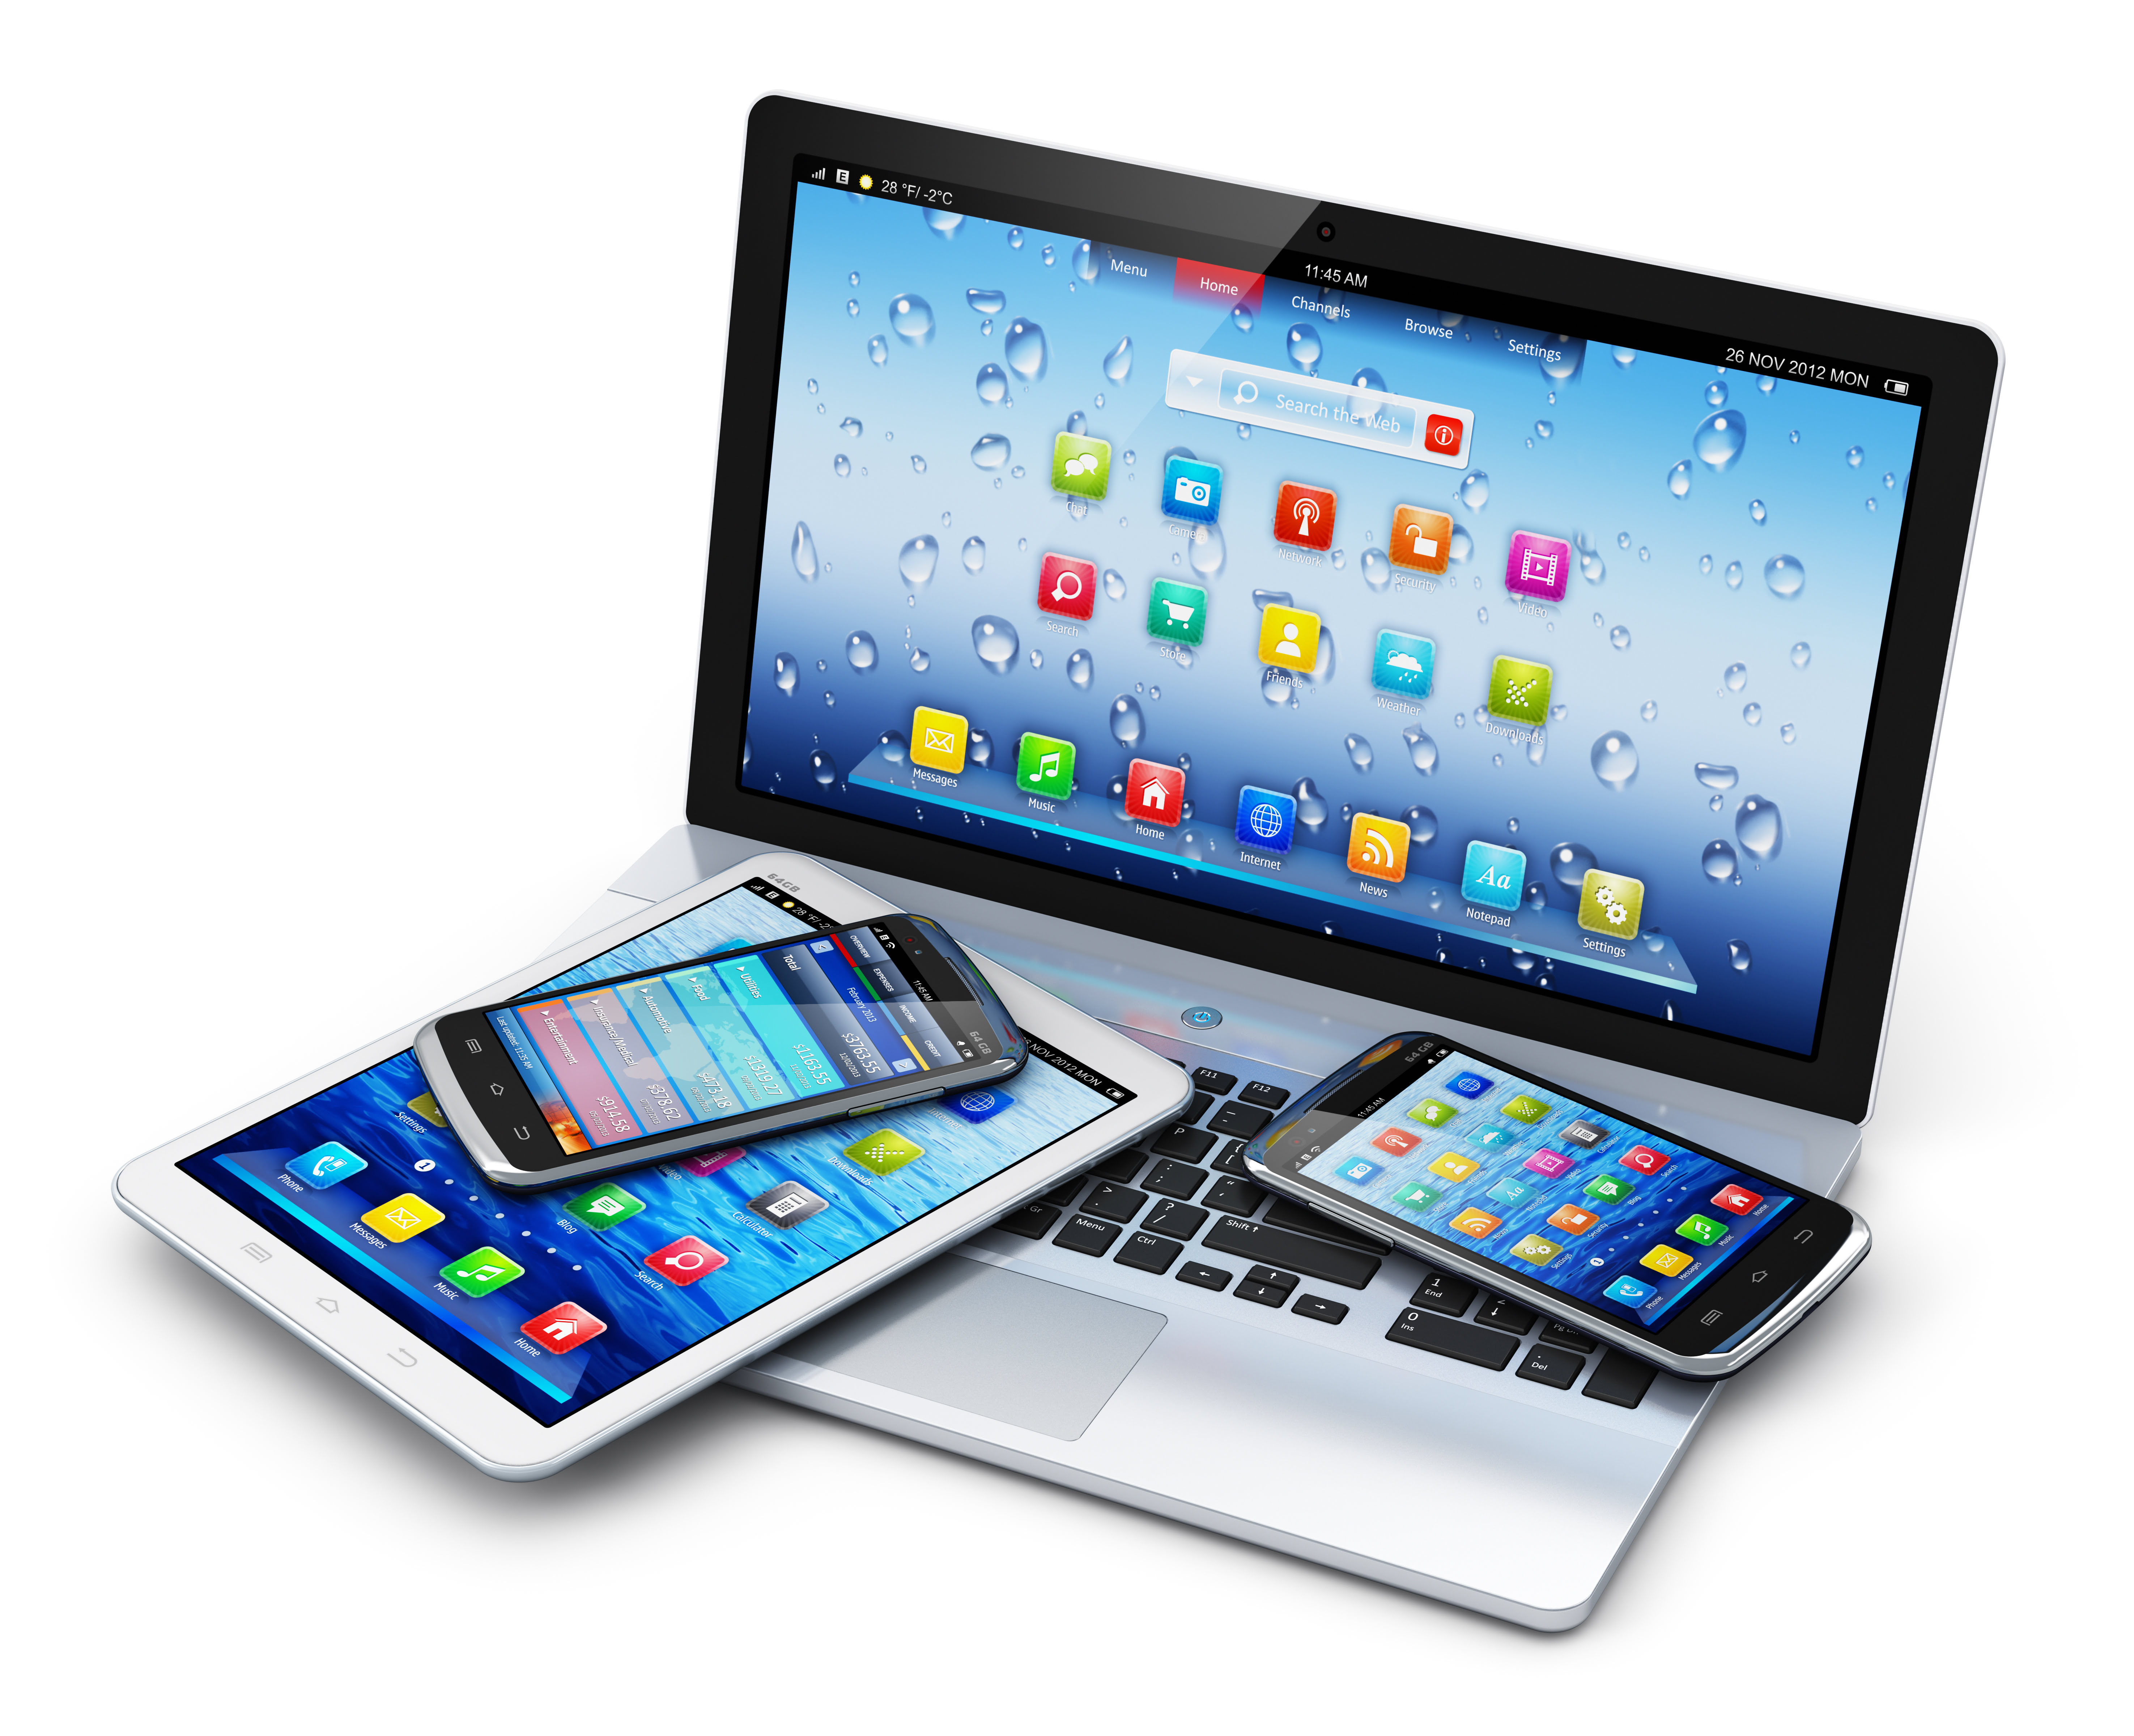 Laptop, Smartphones and Tablets